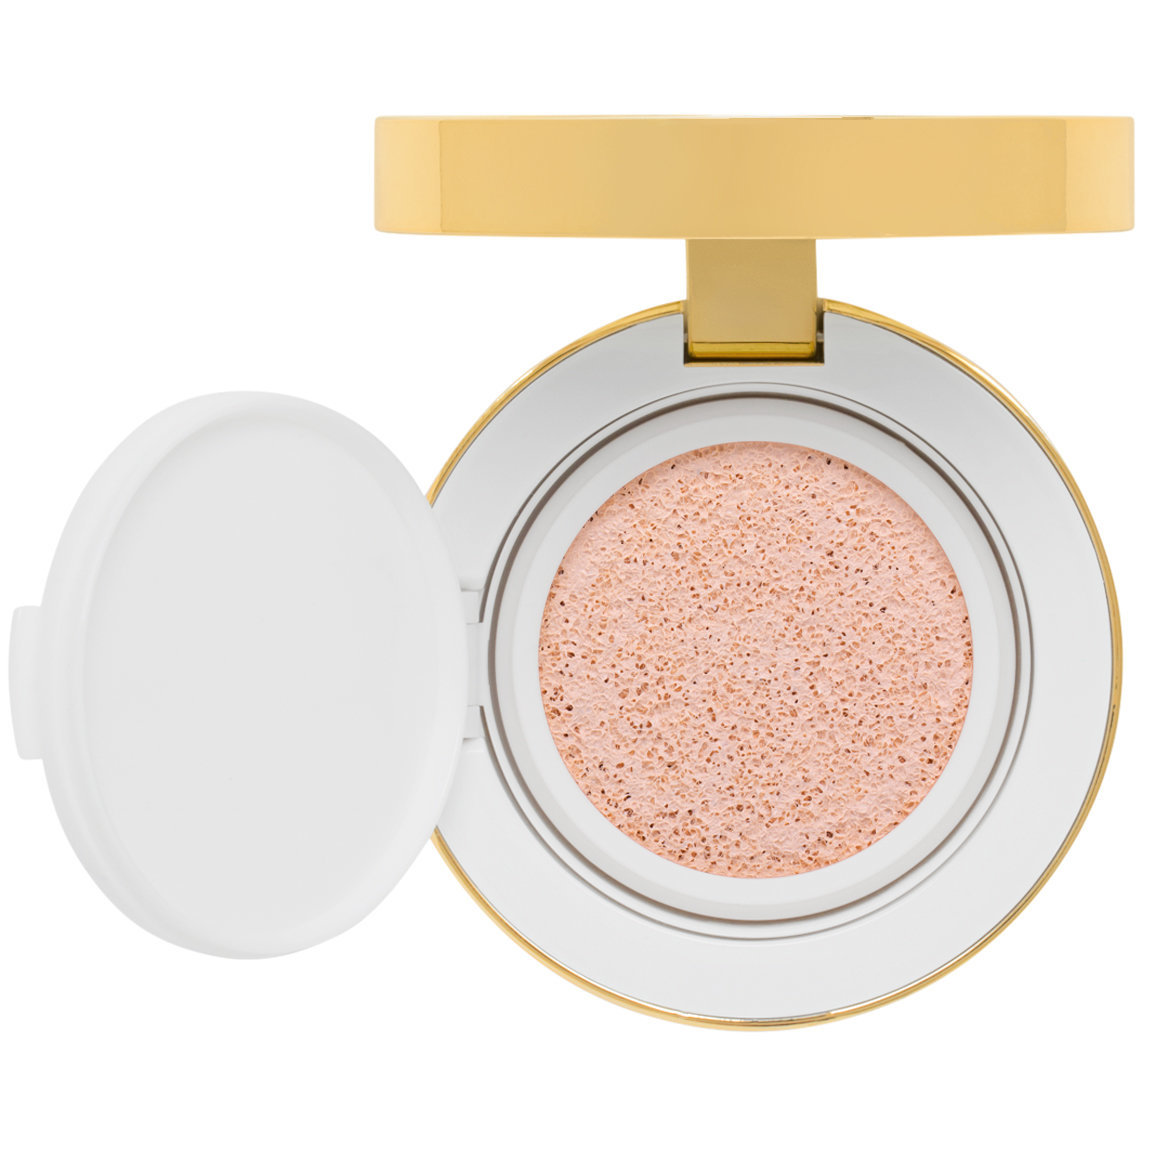 TOM FORD Soleil Glow Tone Up Foundation Hydrating Cushion Compact 1 Rose Glow Tone Up product swatch.